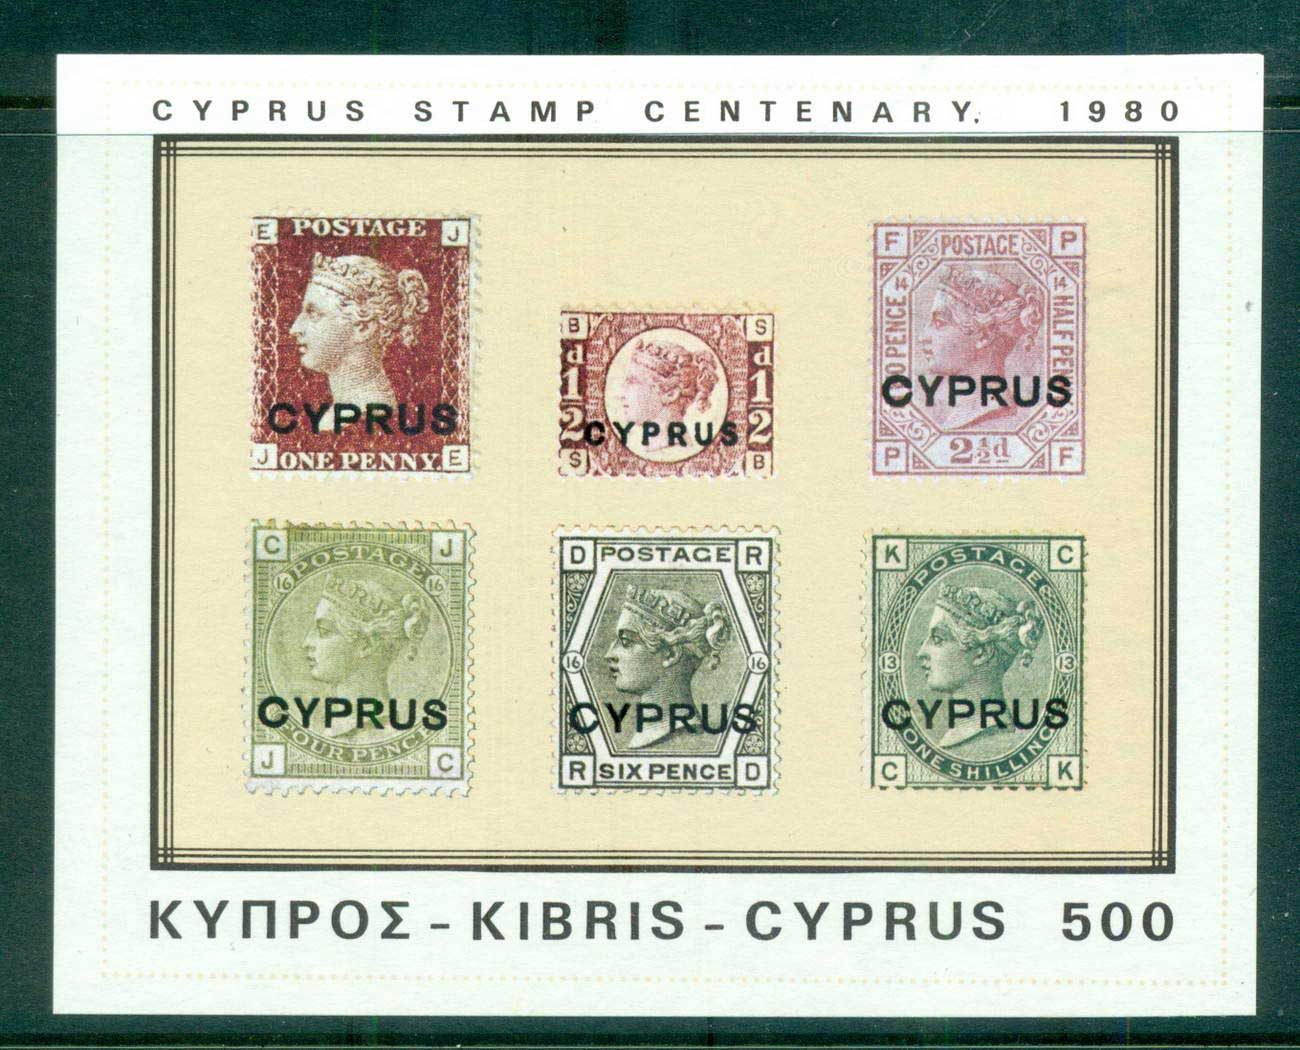 Cyprus 1980 Stamp centenary MS MUH lot57548